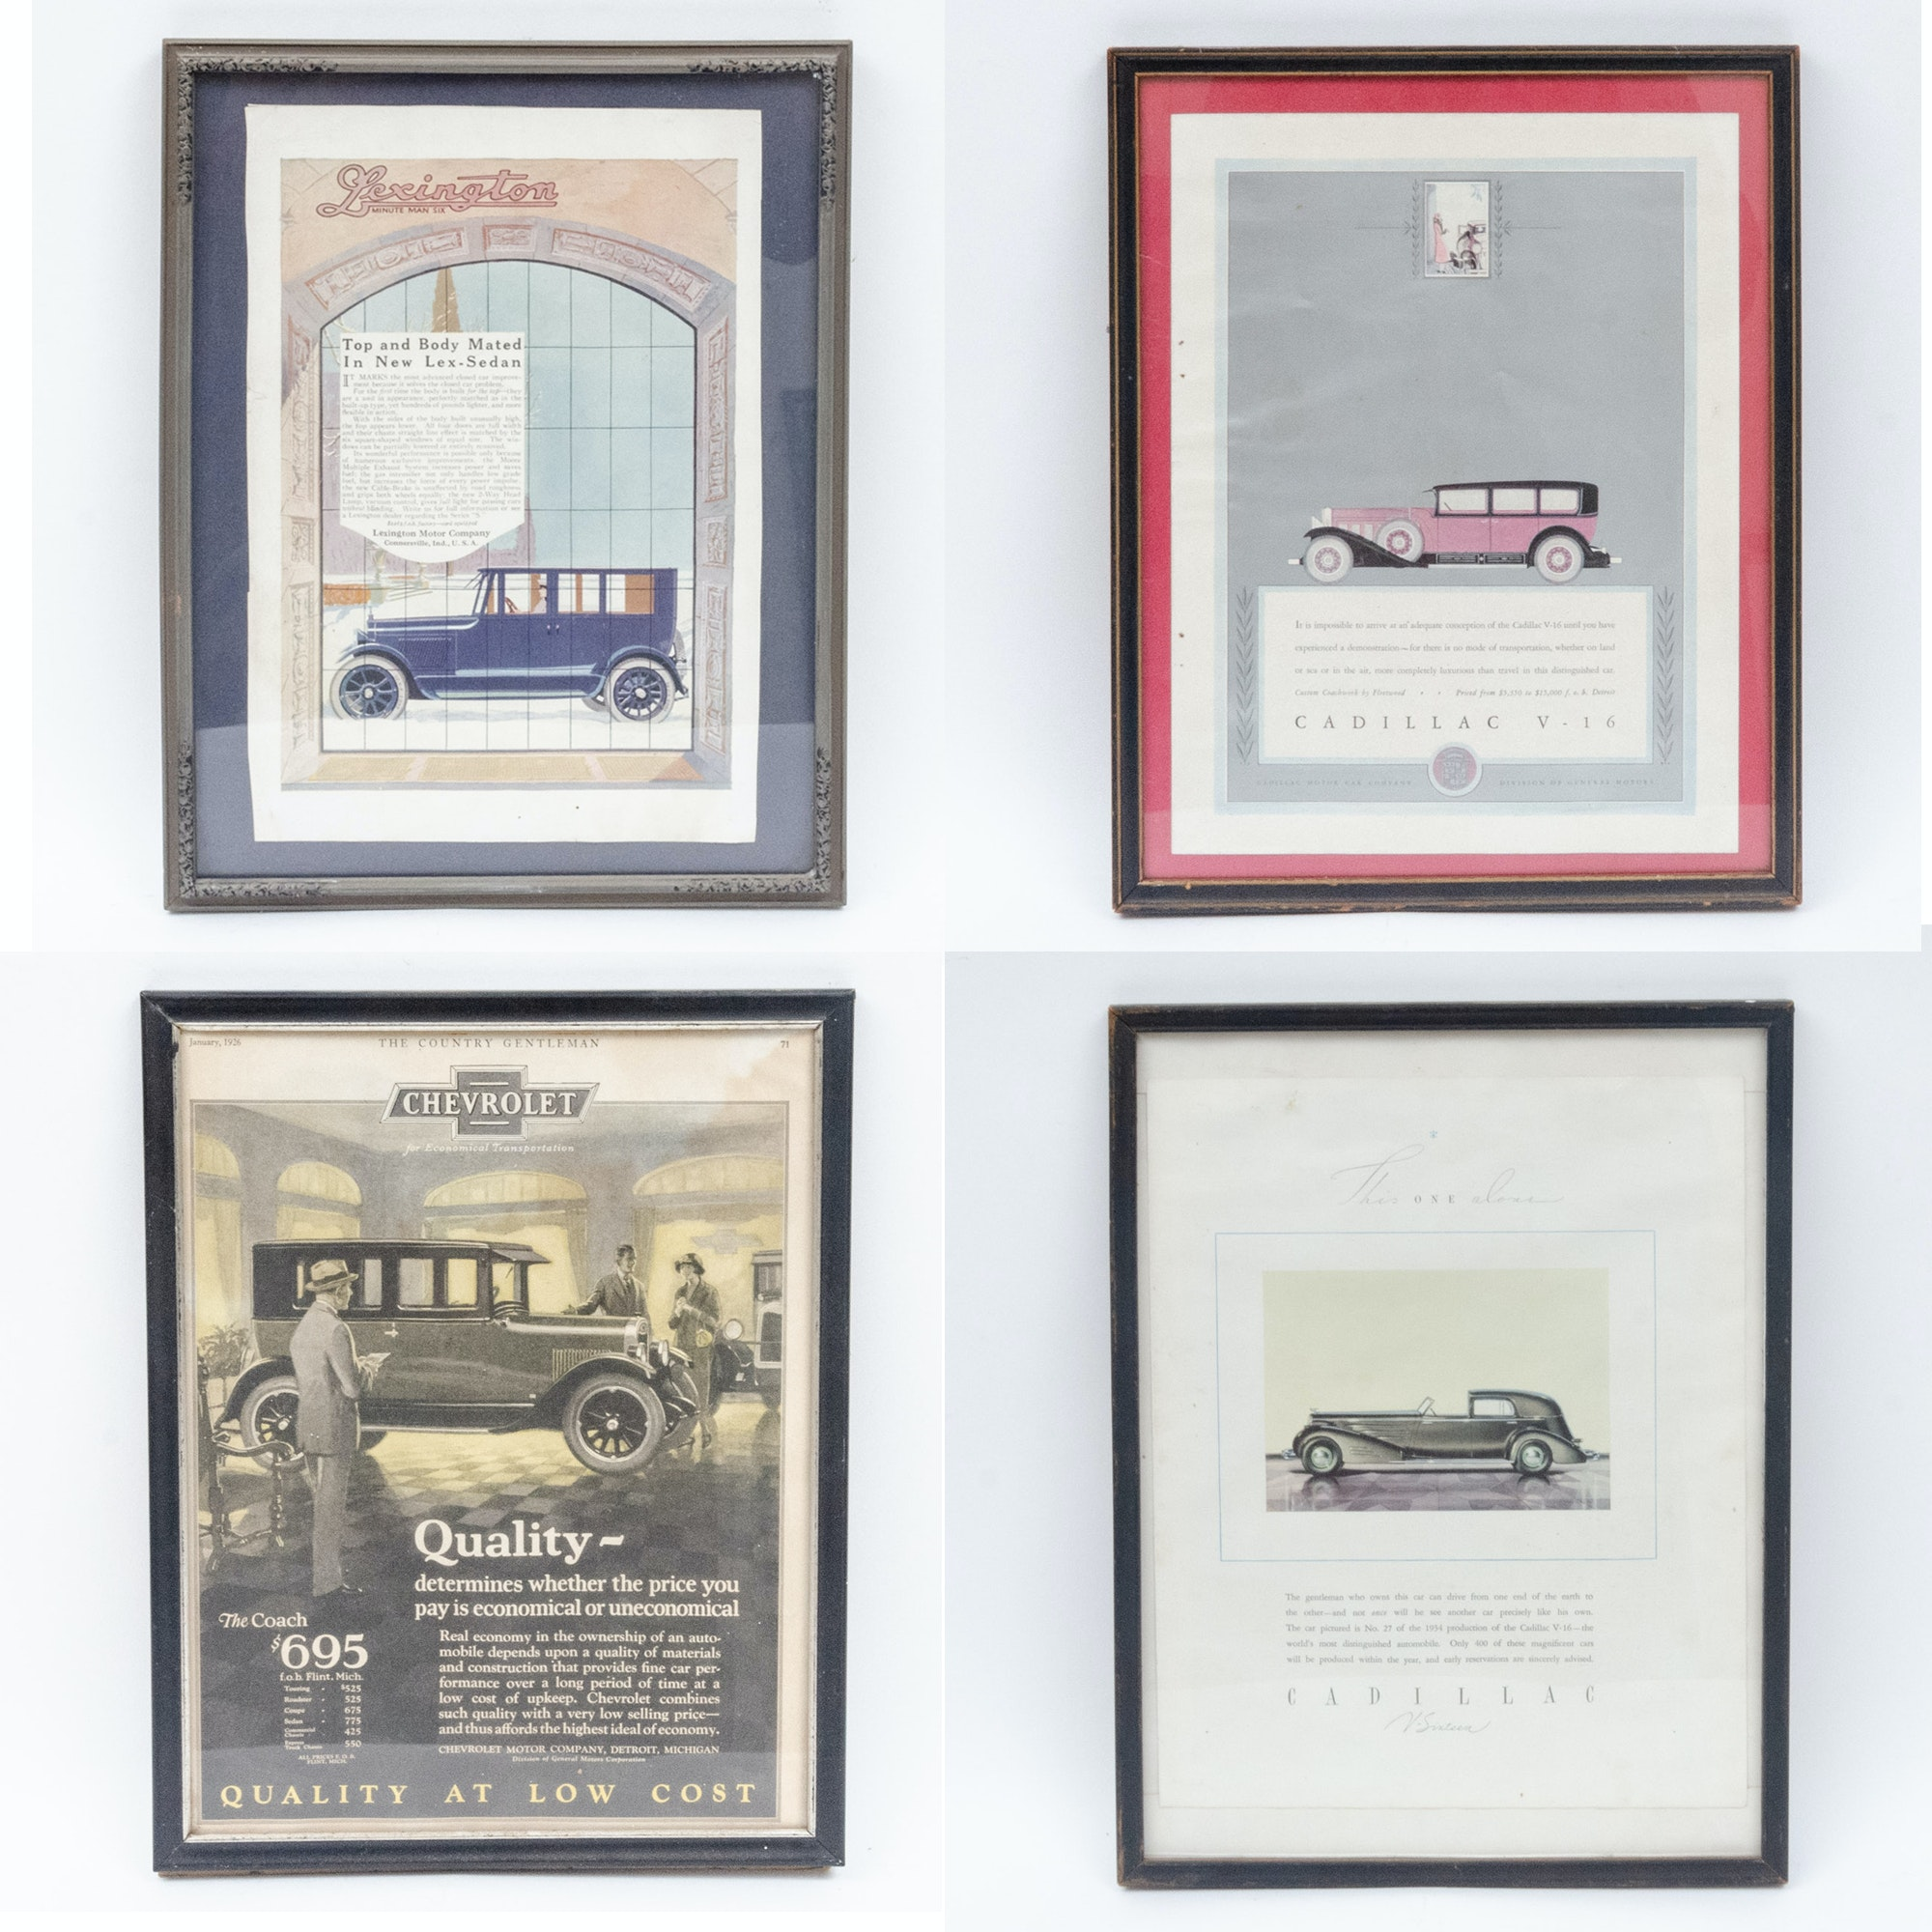 Framed Vehicle Advertisements for Cadillac, Chevrolet and Lexington Motor Co.